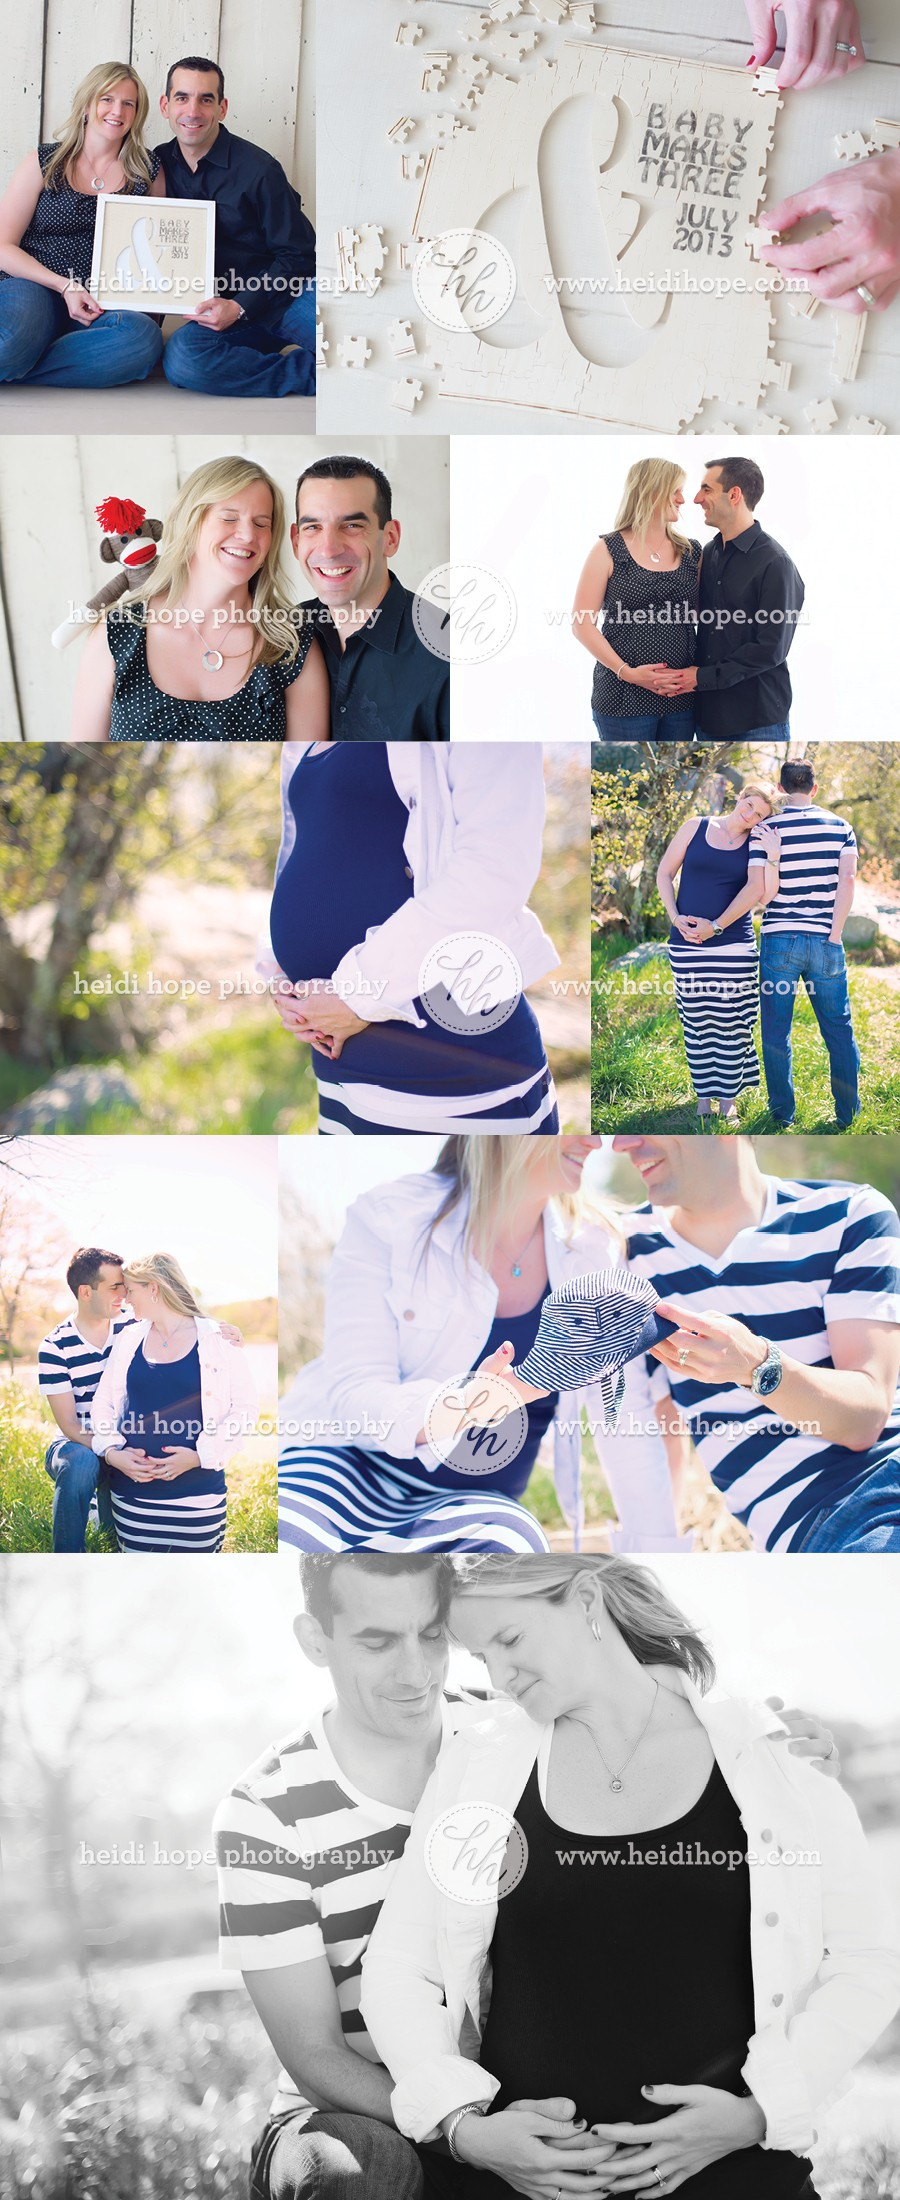 Outdoor Maternity Photo Shoot by Heidi Hope Photography #maternity #couple #outdoor #phootshoot #studio #pregnancy announcement idea